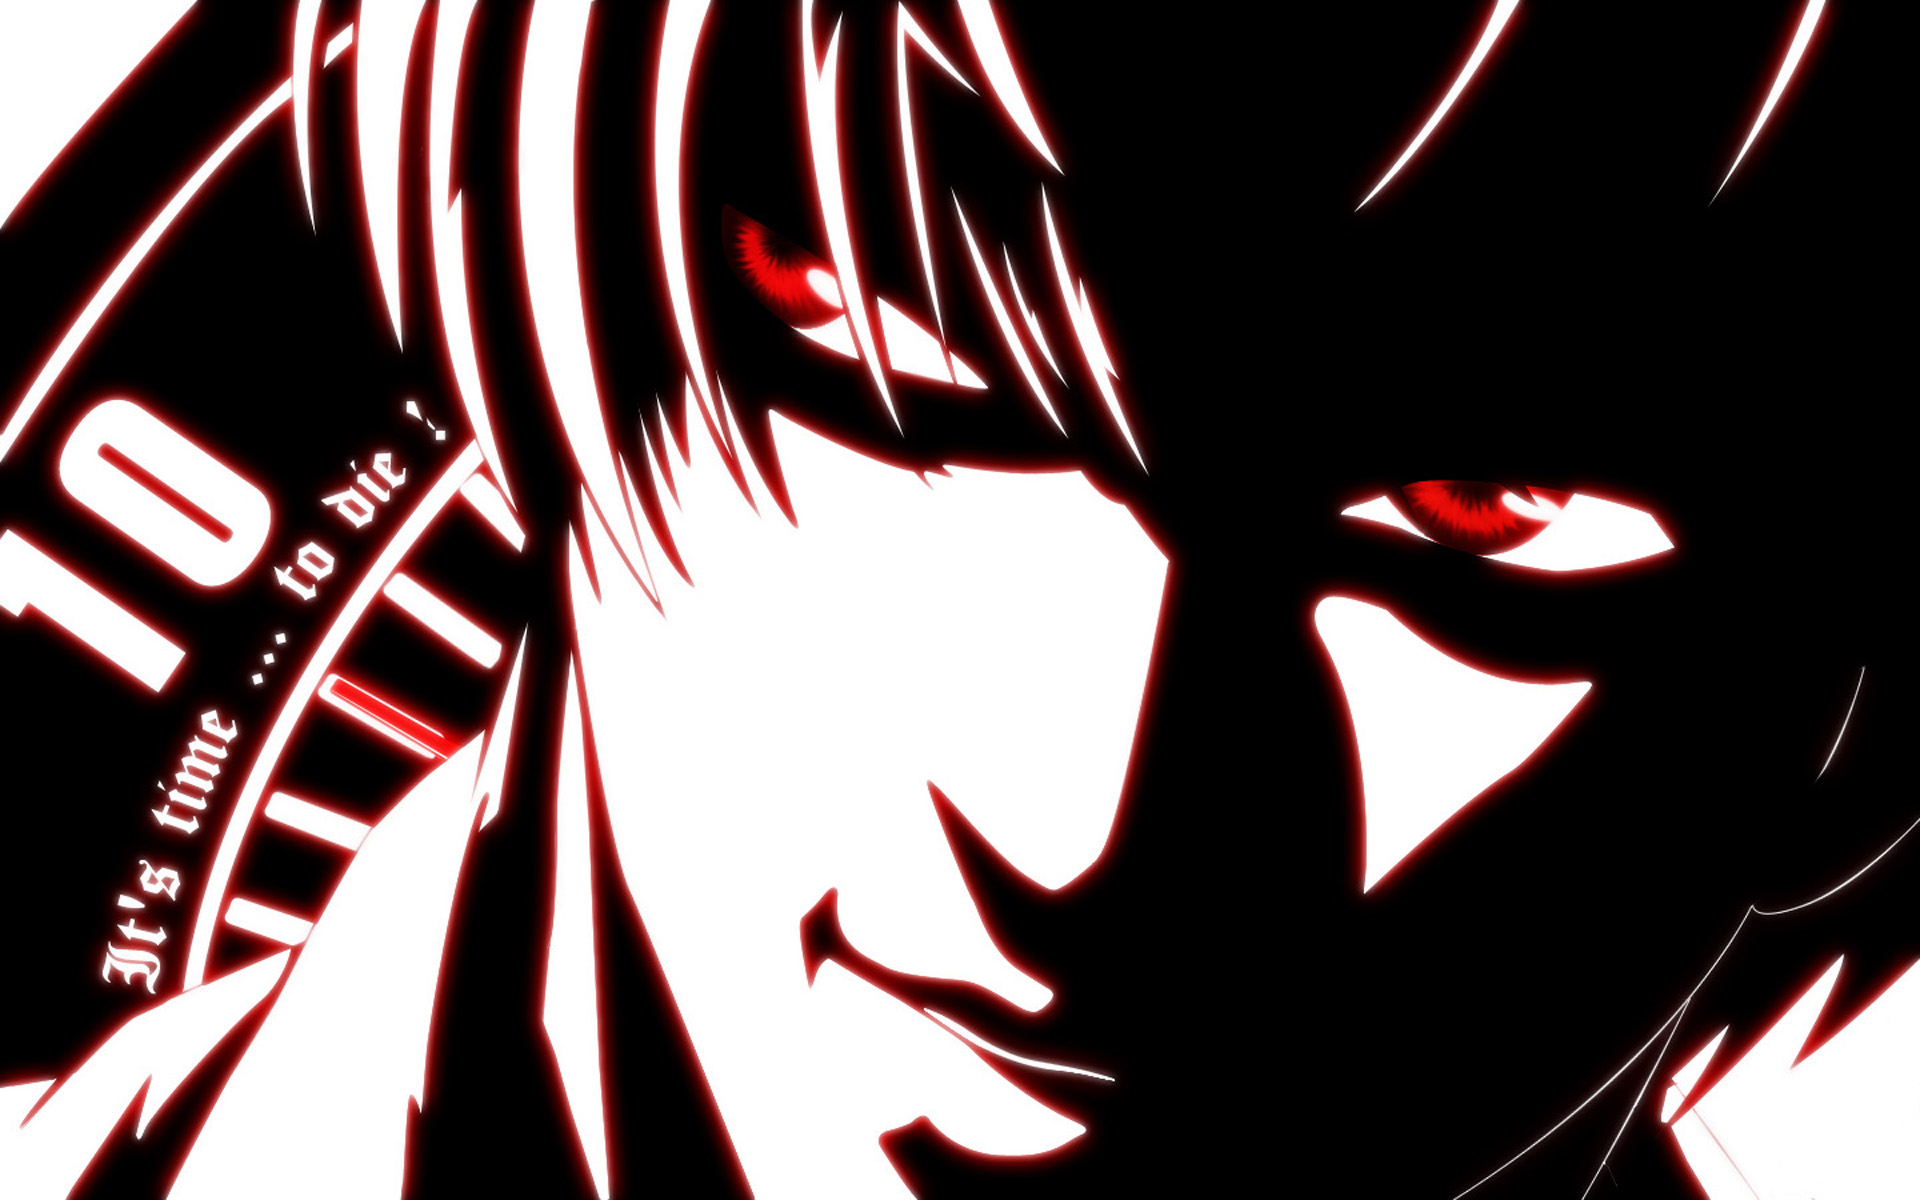 Light Yagami Wallpaper 1920x1200 Wallpapers 1920x1200 Wallpapers 1920x1200